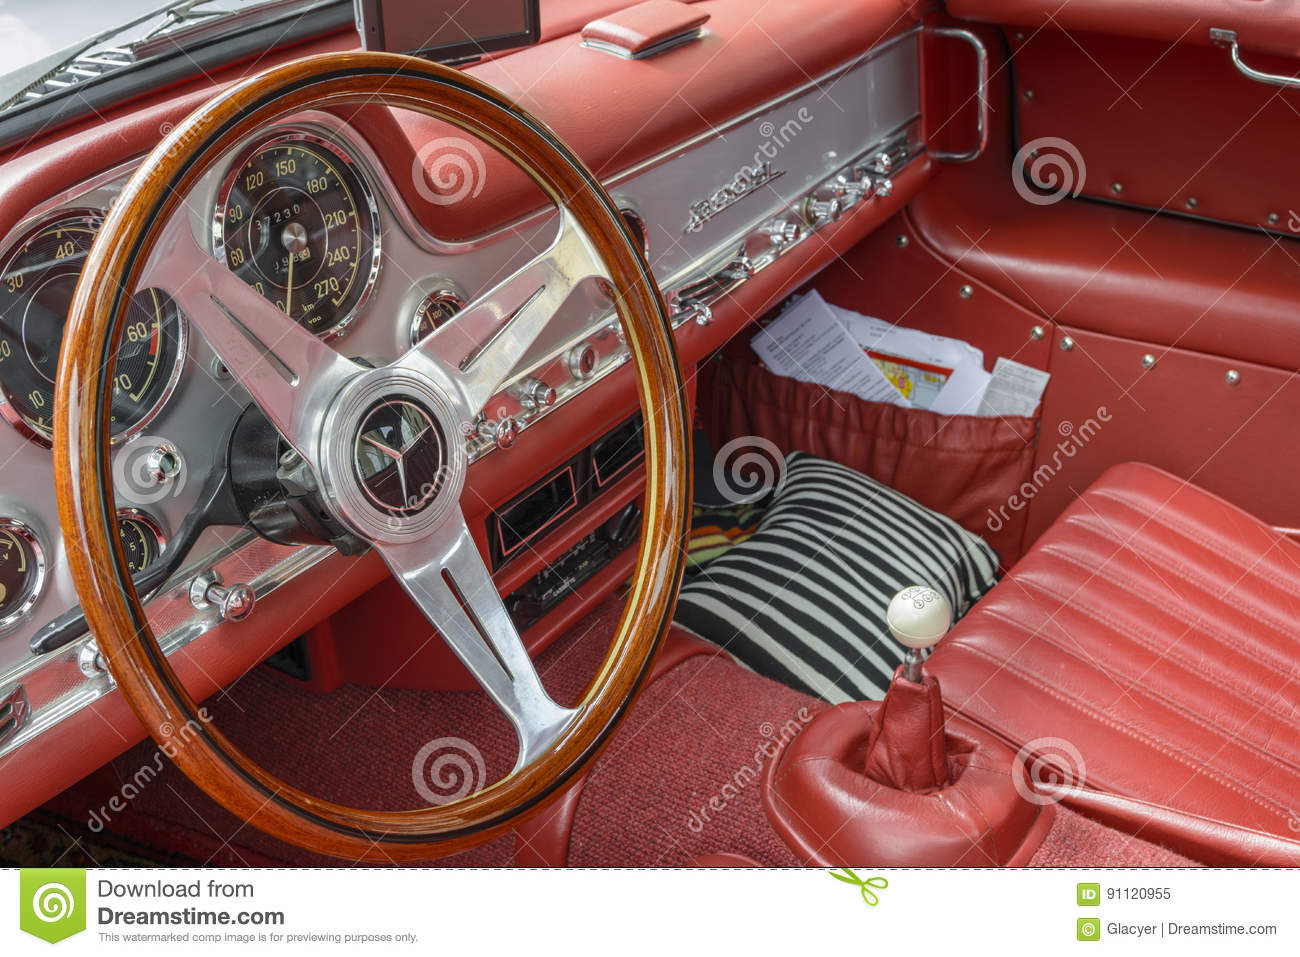 Mercedes Benz Sl 300 Gullwing Interior Editorial Image Image Of